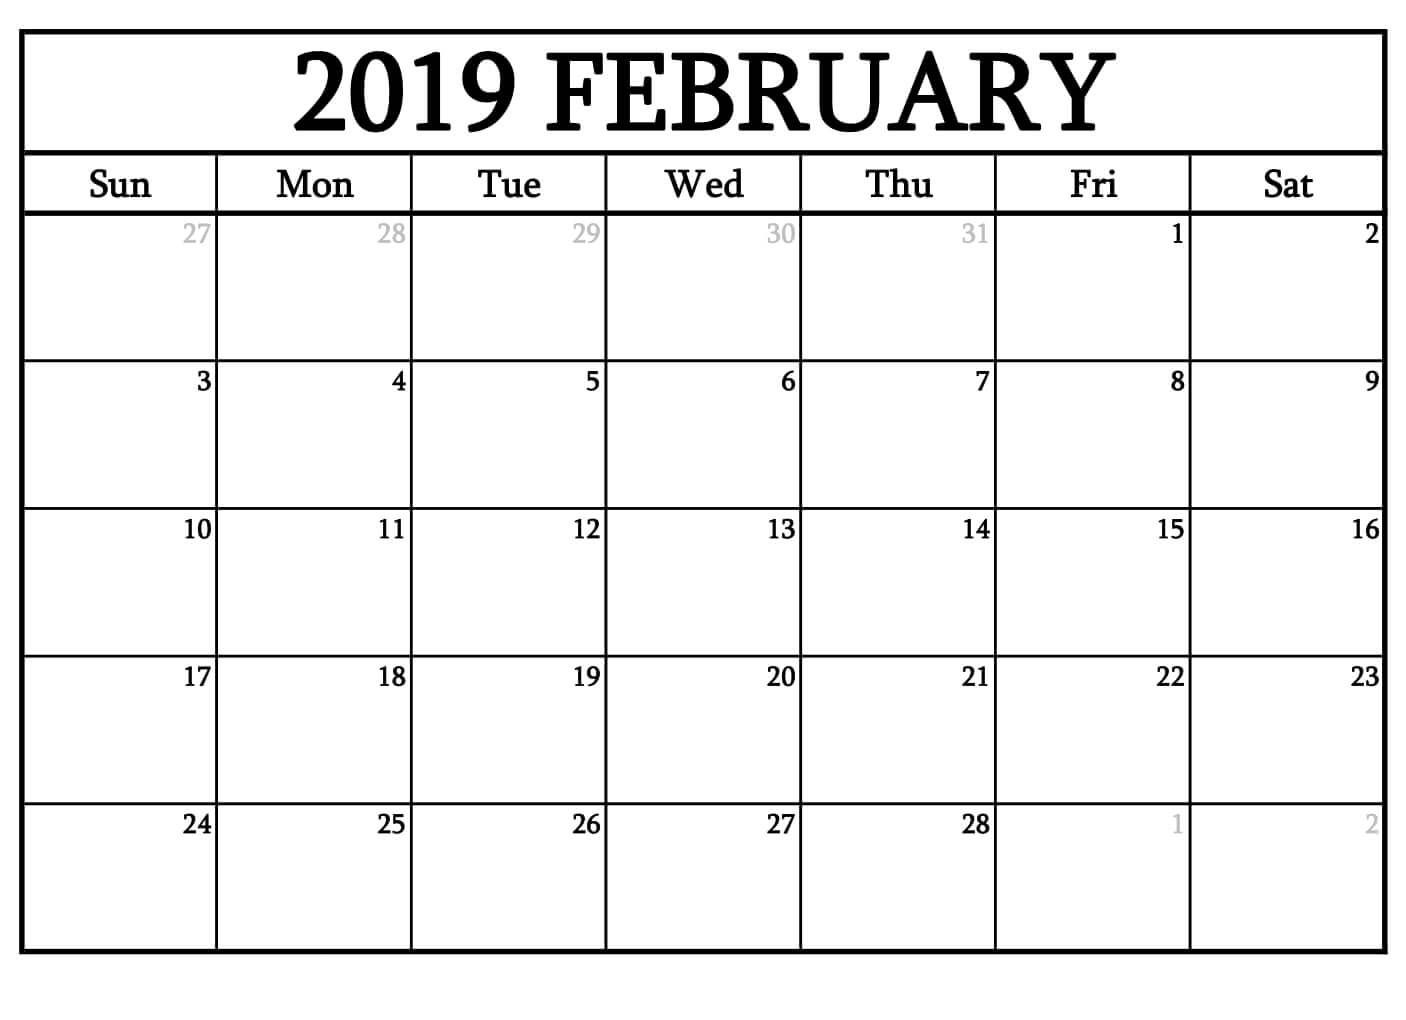 February 2019 Calendar For Academic Template | Free Printable regarding February Calendar Printable Template Blank